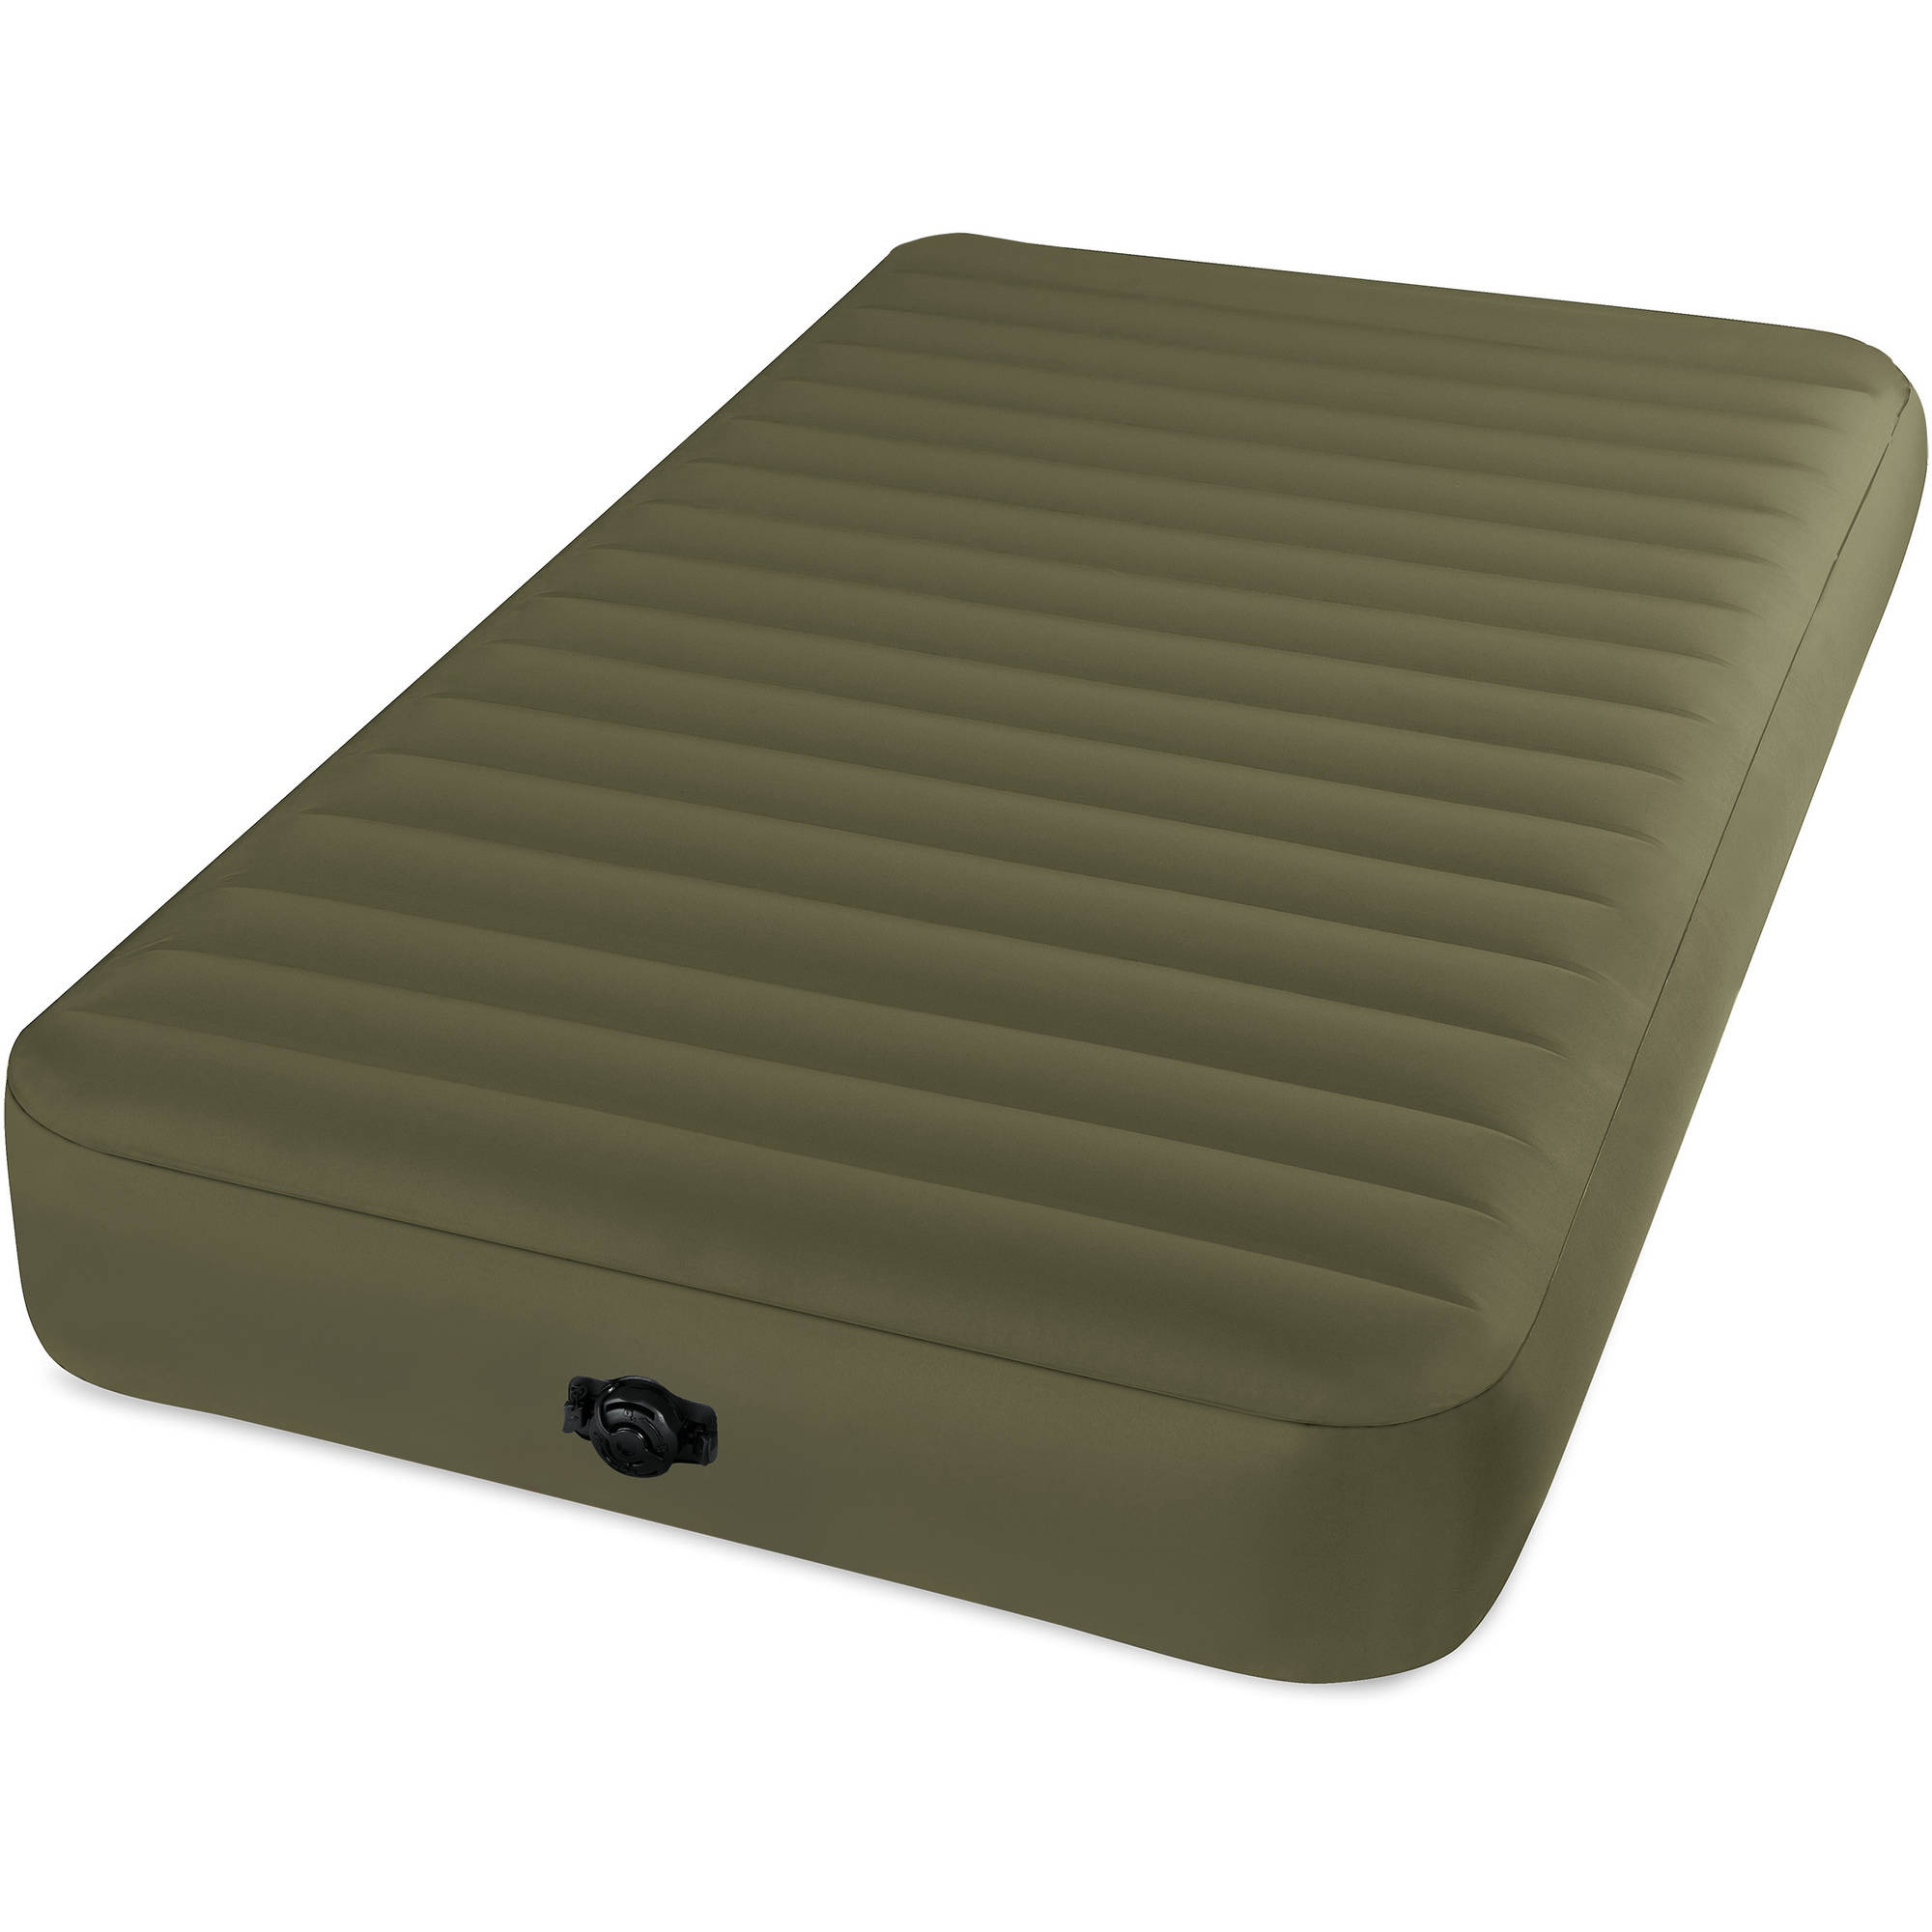 Air bed for camping - Air Bed For Camping 27